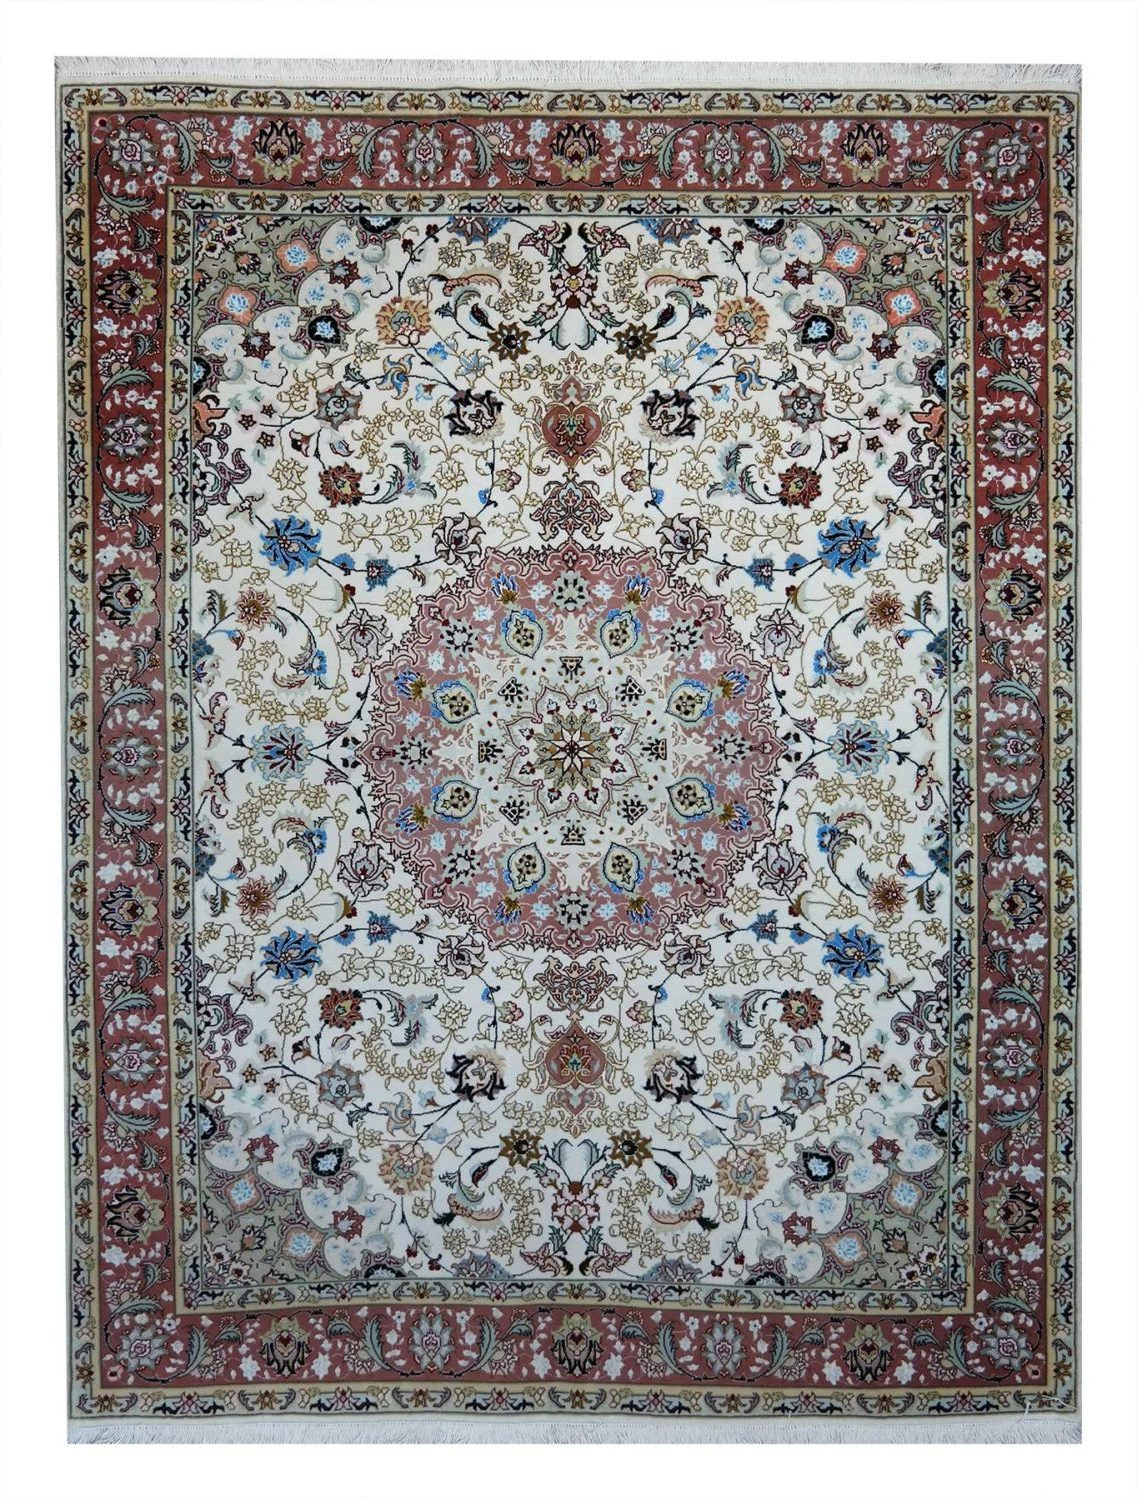 tabriz 60 r , wool and silk , 200 150 cm offer €.2800,00